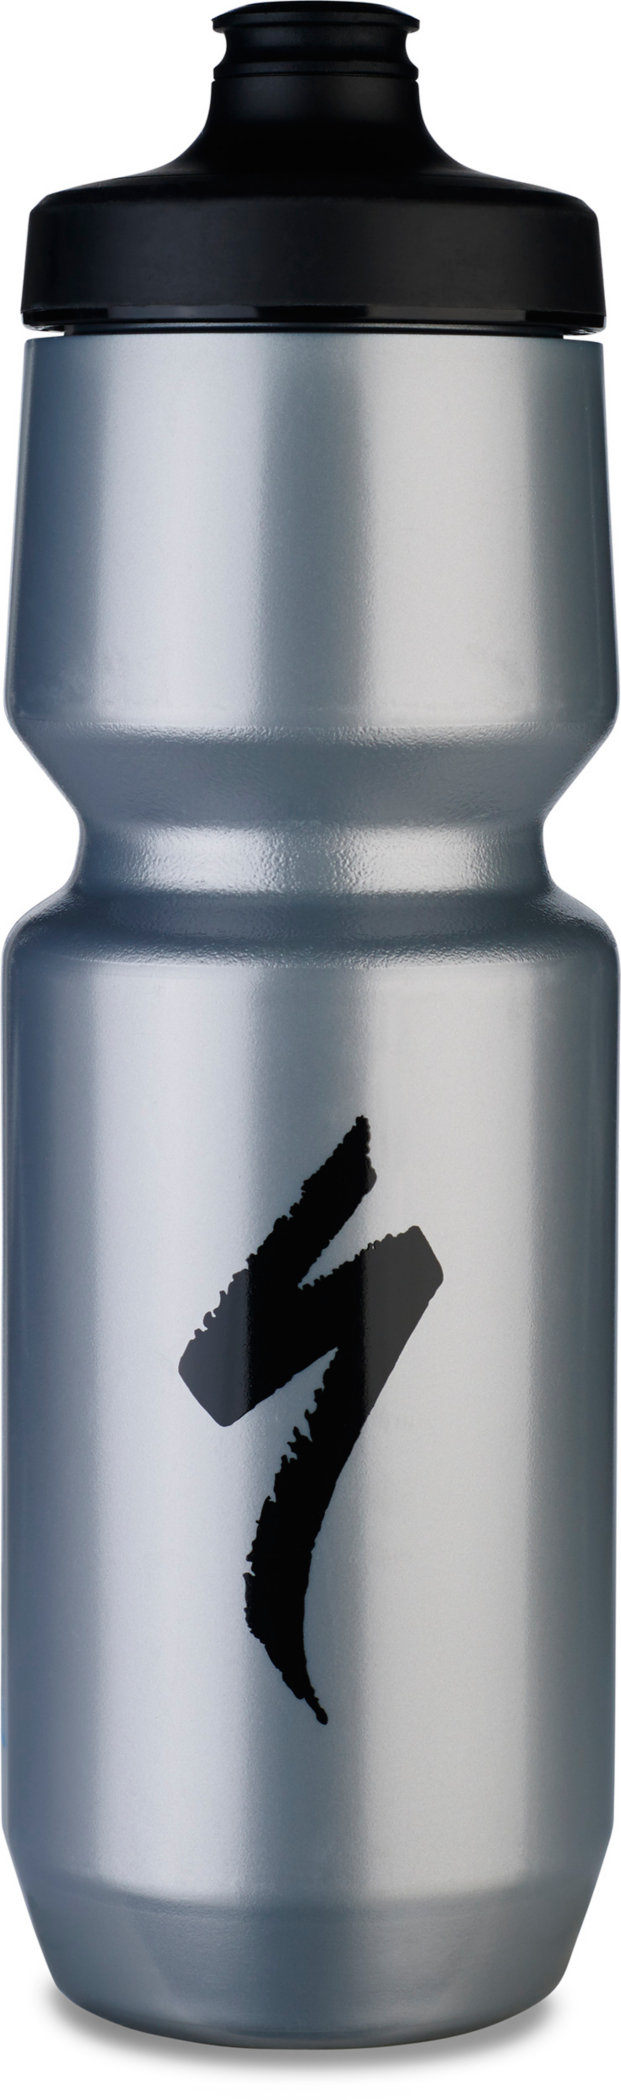 Specialized Purist WaterGate Water Bottle Silver/Black S-Logo 26 OZ - Specialized Purist WaterGate Water Bottle Silver/Black S-Logo 26 OZ